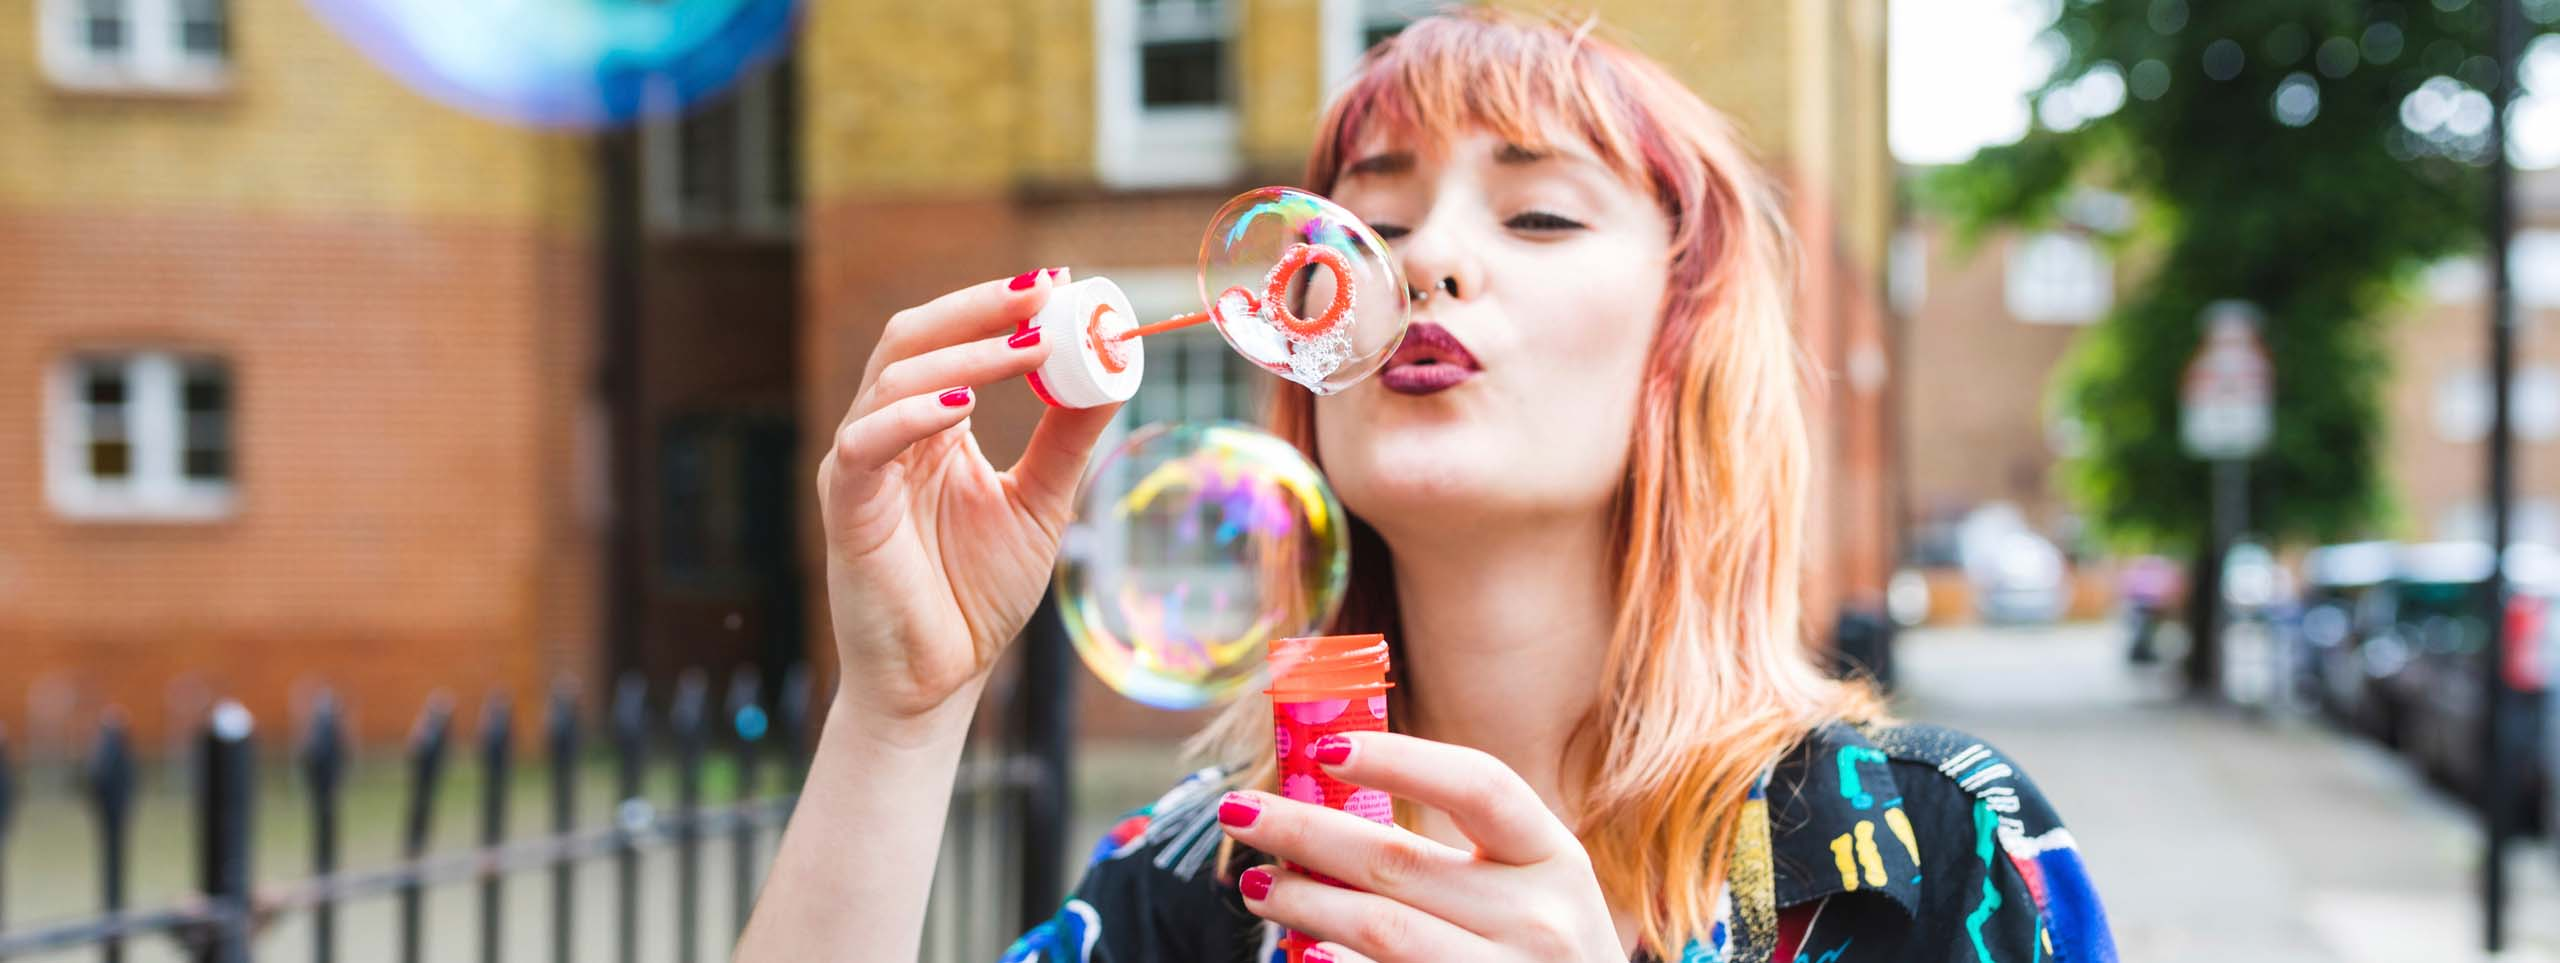 Young woman with unicorn hair blowing bubbles